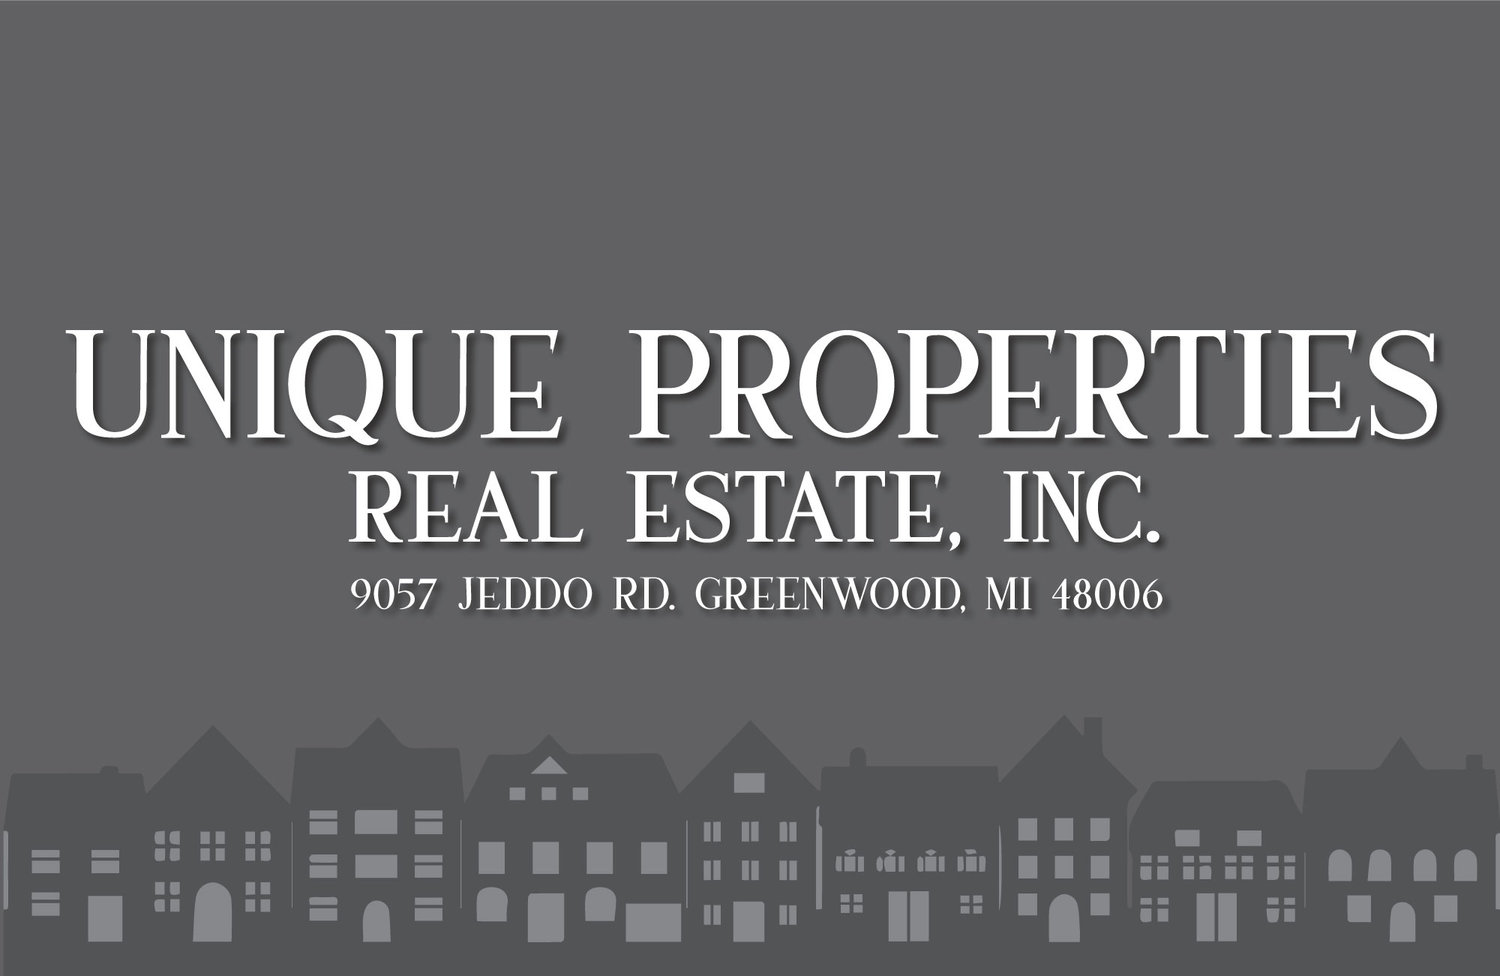 Unique Properties Real Estate, Inc.